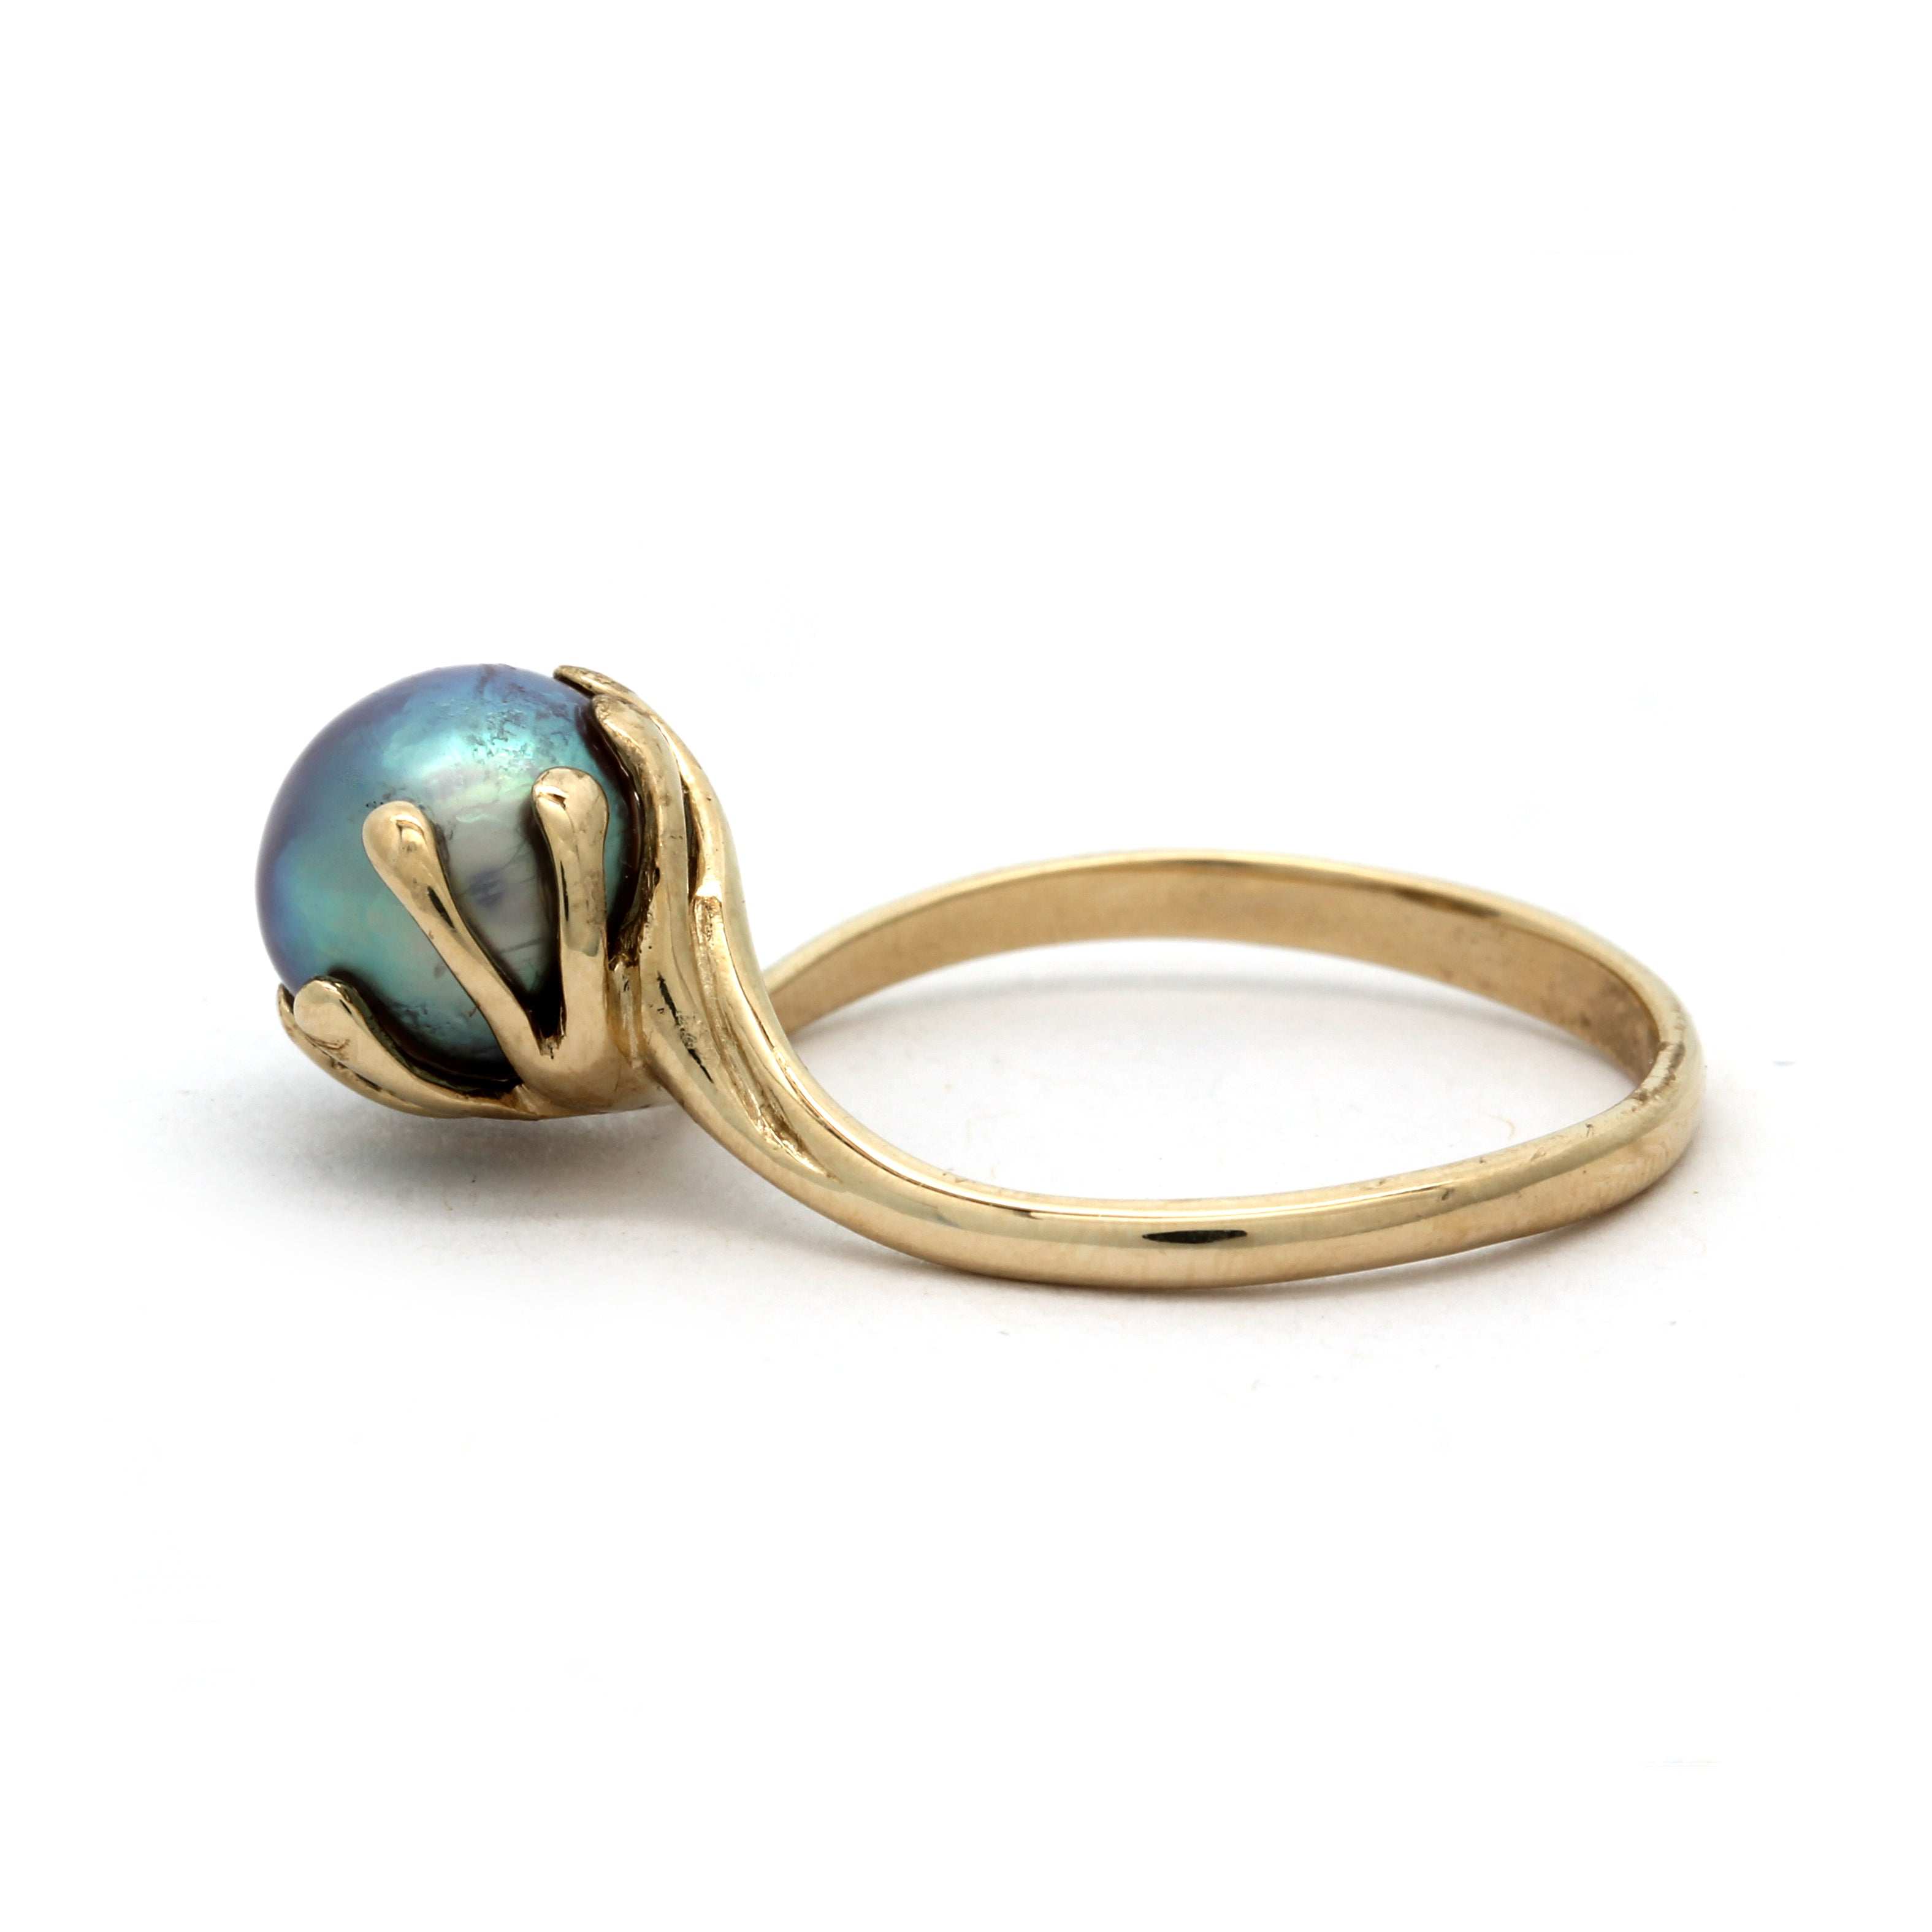 14K Yellow Gold Ring with a Cortez Pearl